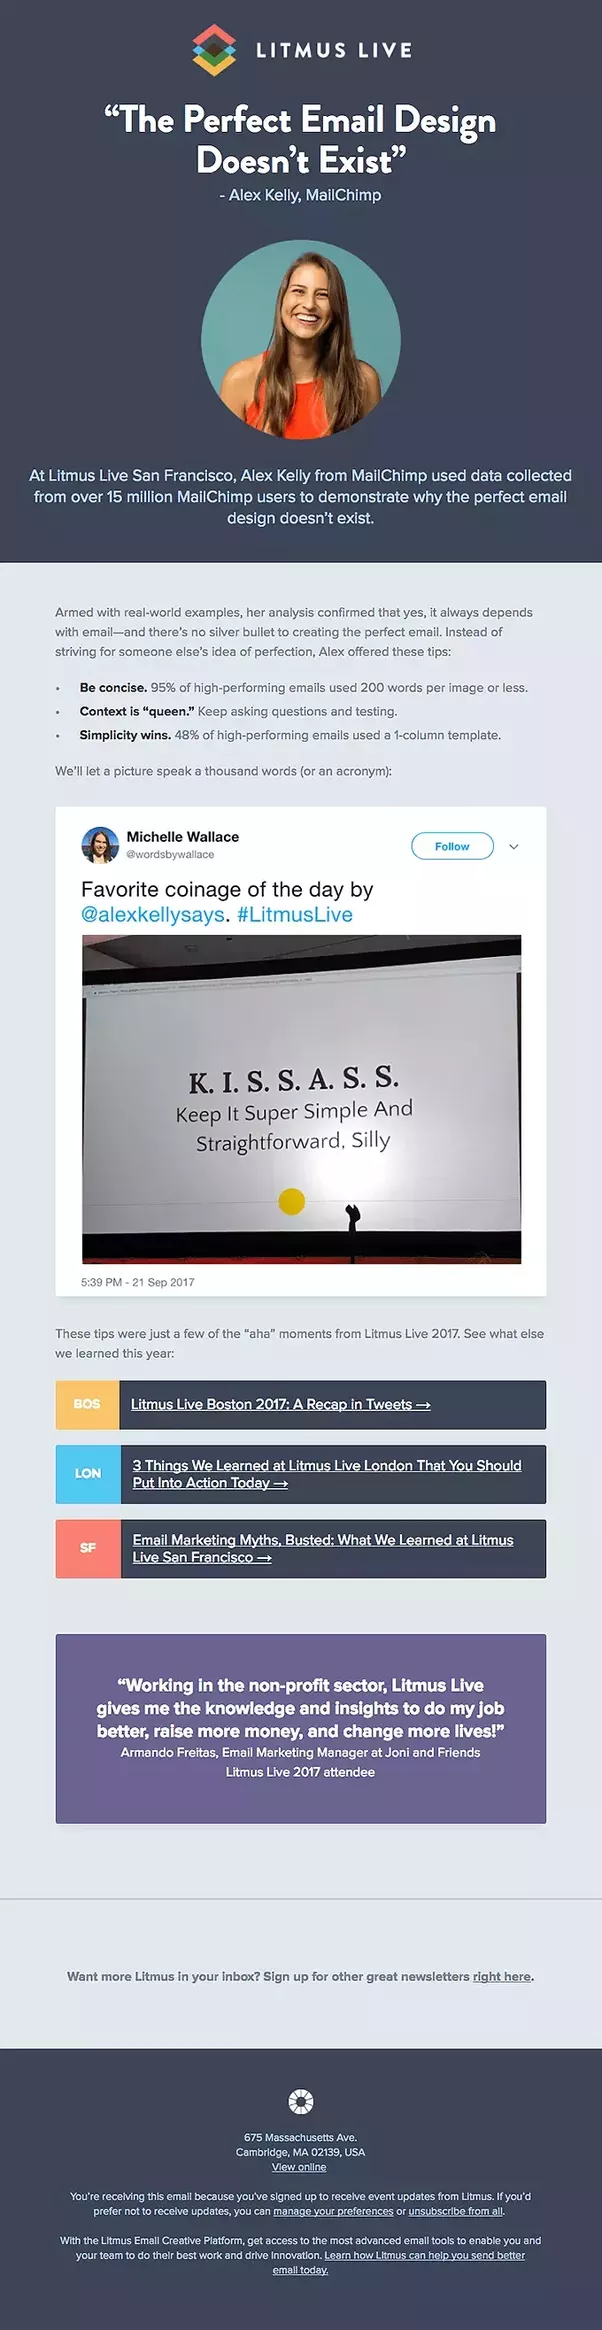 What Are Some Examples Of Engaging Email Digests And Newsletters